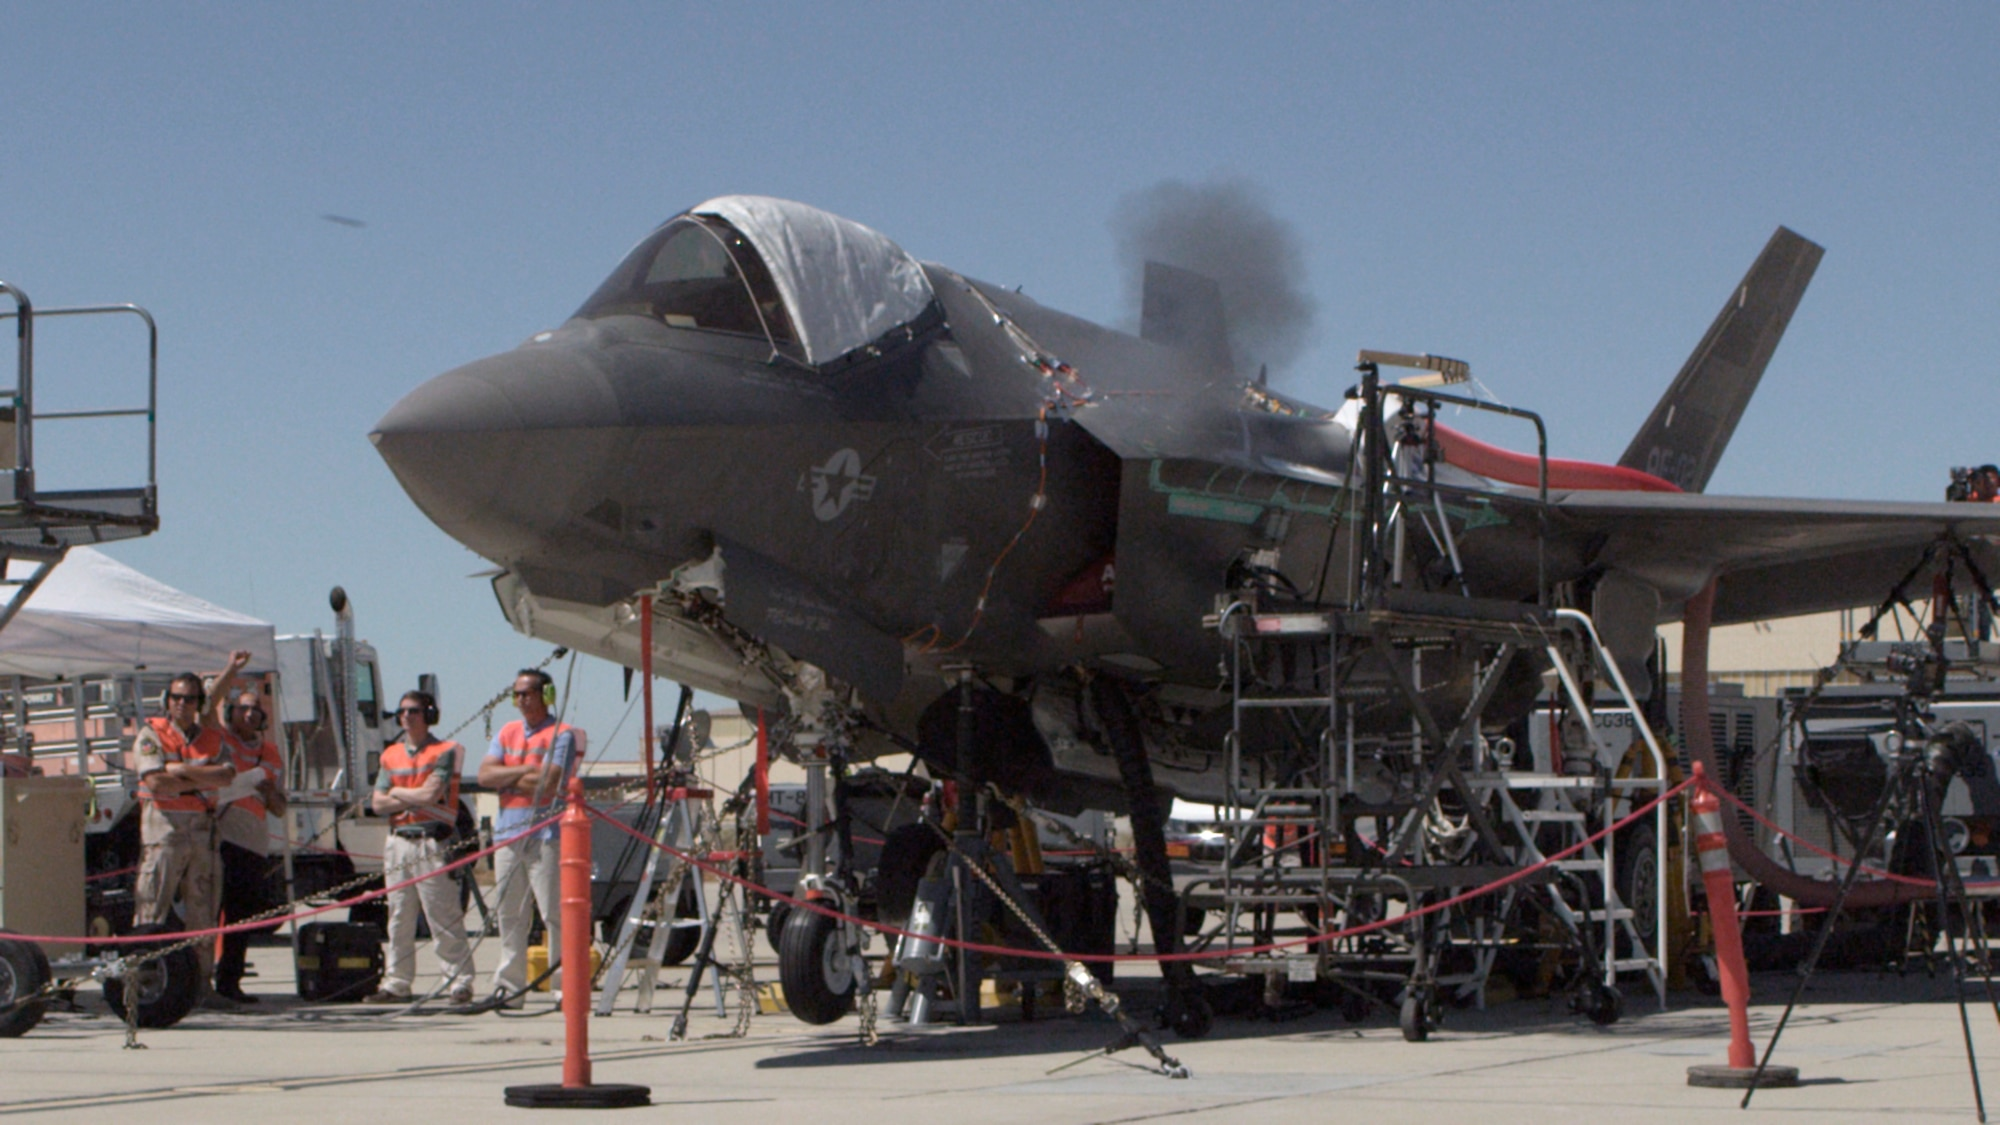 An F-35A Lightning II, tail number AF-2, fires a burst of rounds down range at the Edwards Gun Harmonizing Range July 17, 2015, on Edwards Air Force Base, Calif. The F-35 Joint Strike Fighter Integrated Test Force is in the process of testing the F-35A Lightning II's newest munitions asset; a four-barrel Gatling gun that fires 25 mm rounds, known as the GAU-22/A. (Courtesy photo/Darin Russell)